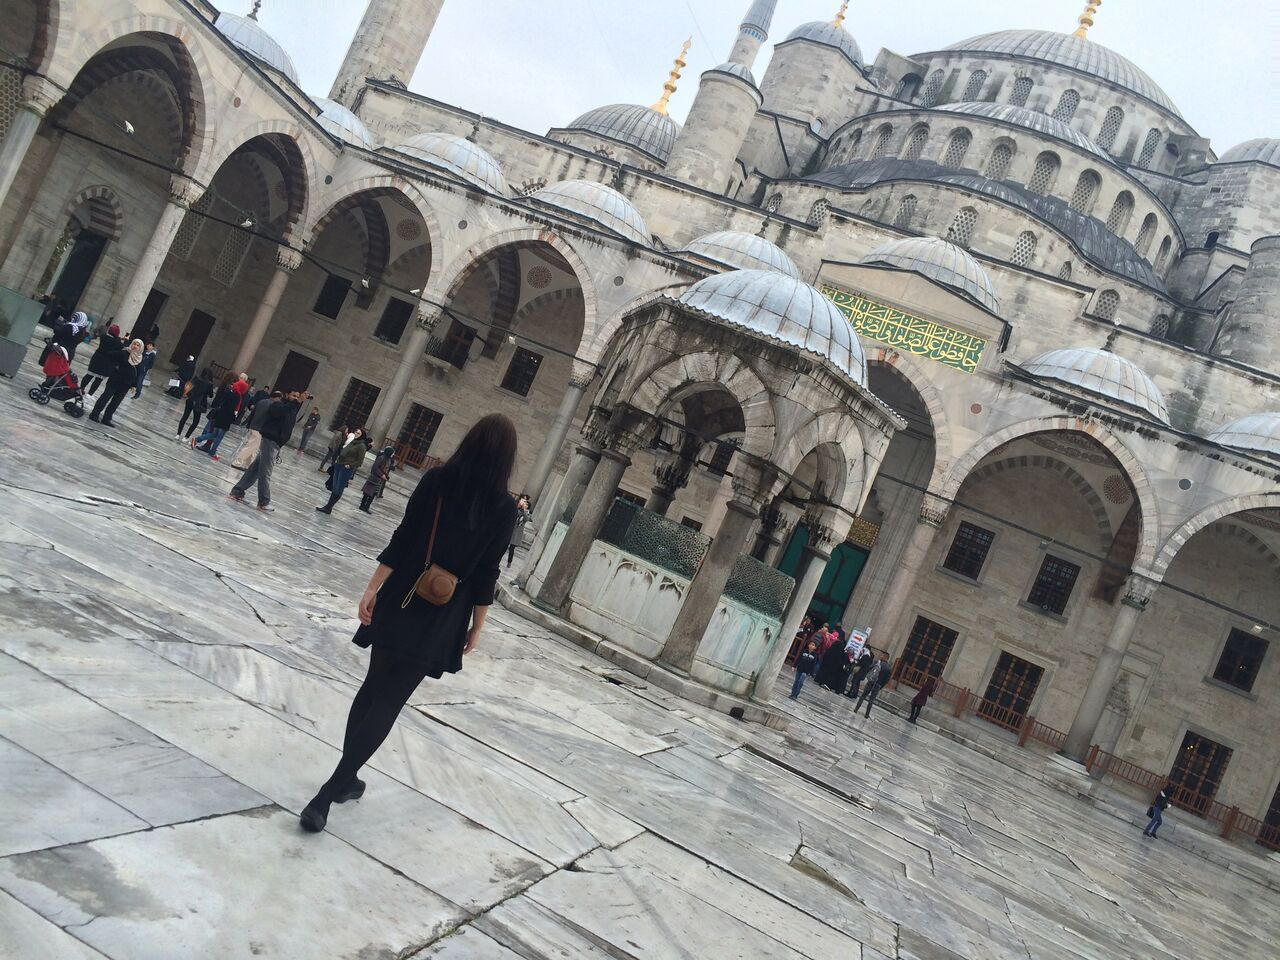 Advice from Experienced Traveler on Instanbul Turkey